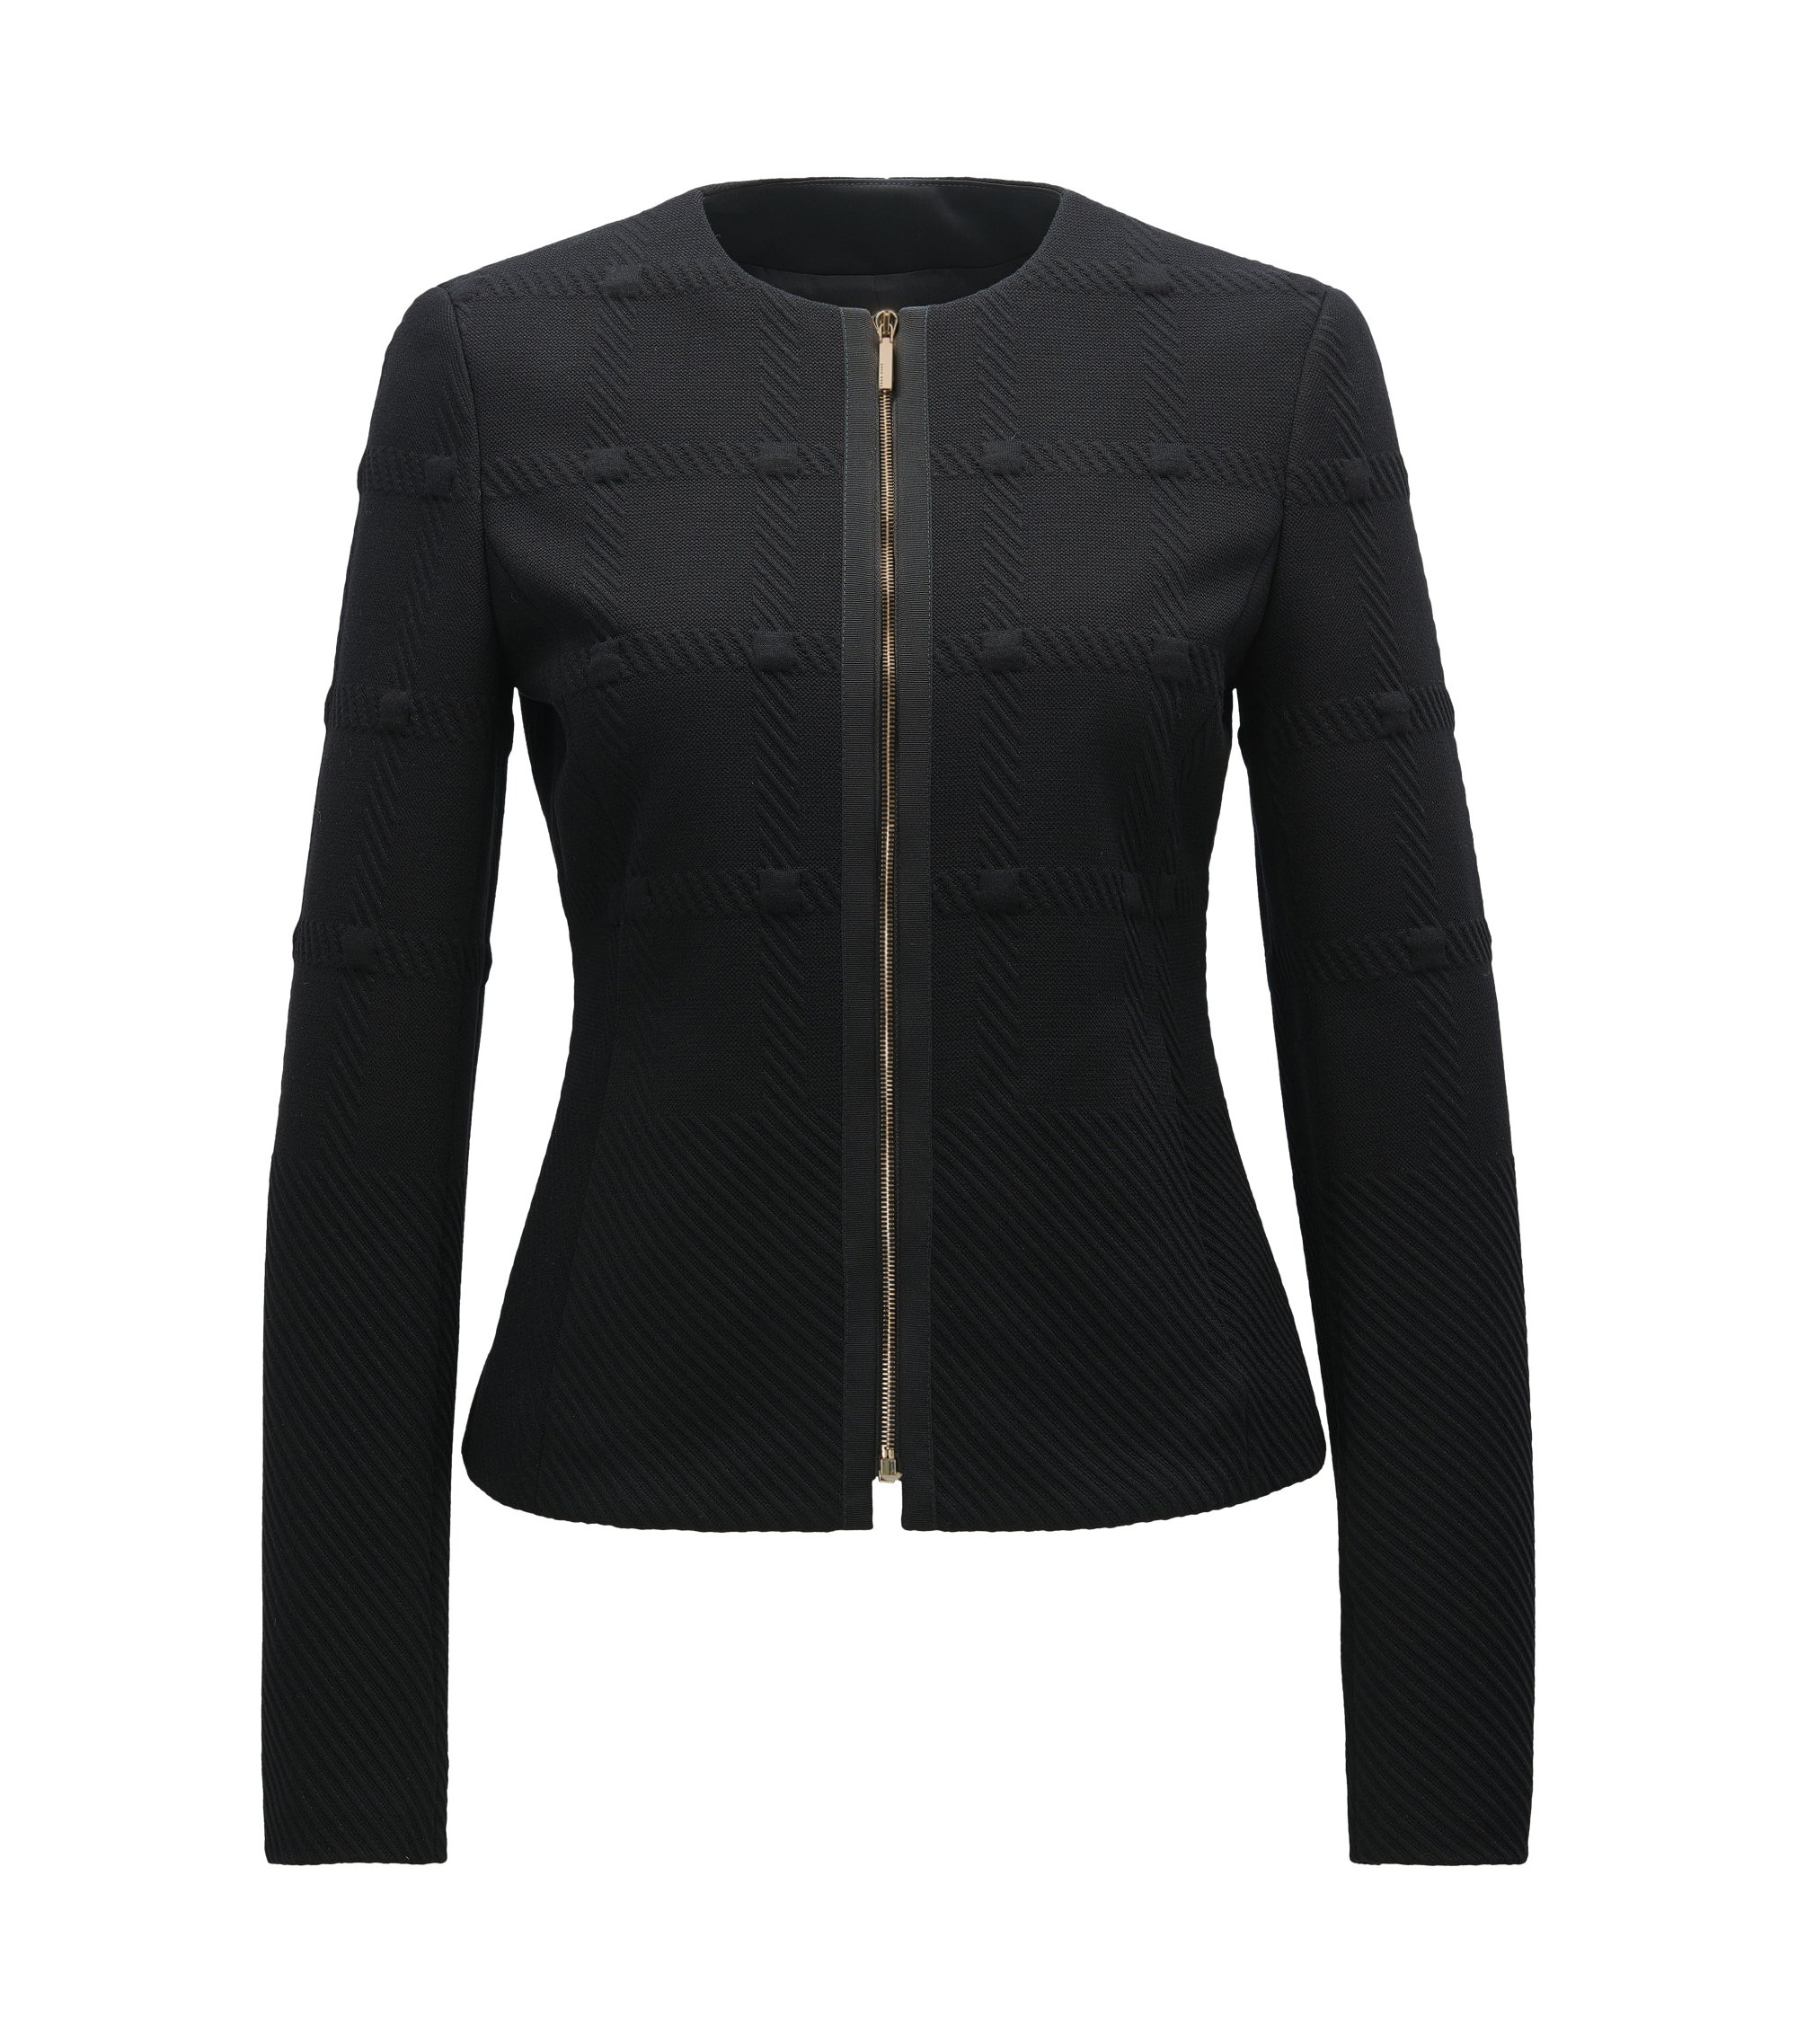 Regular-fit jacket in structured jersey, Black